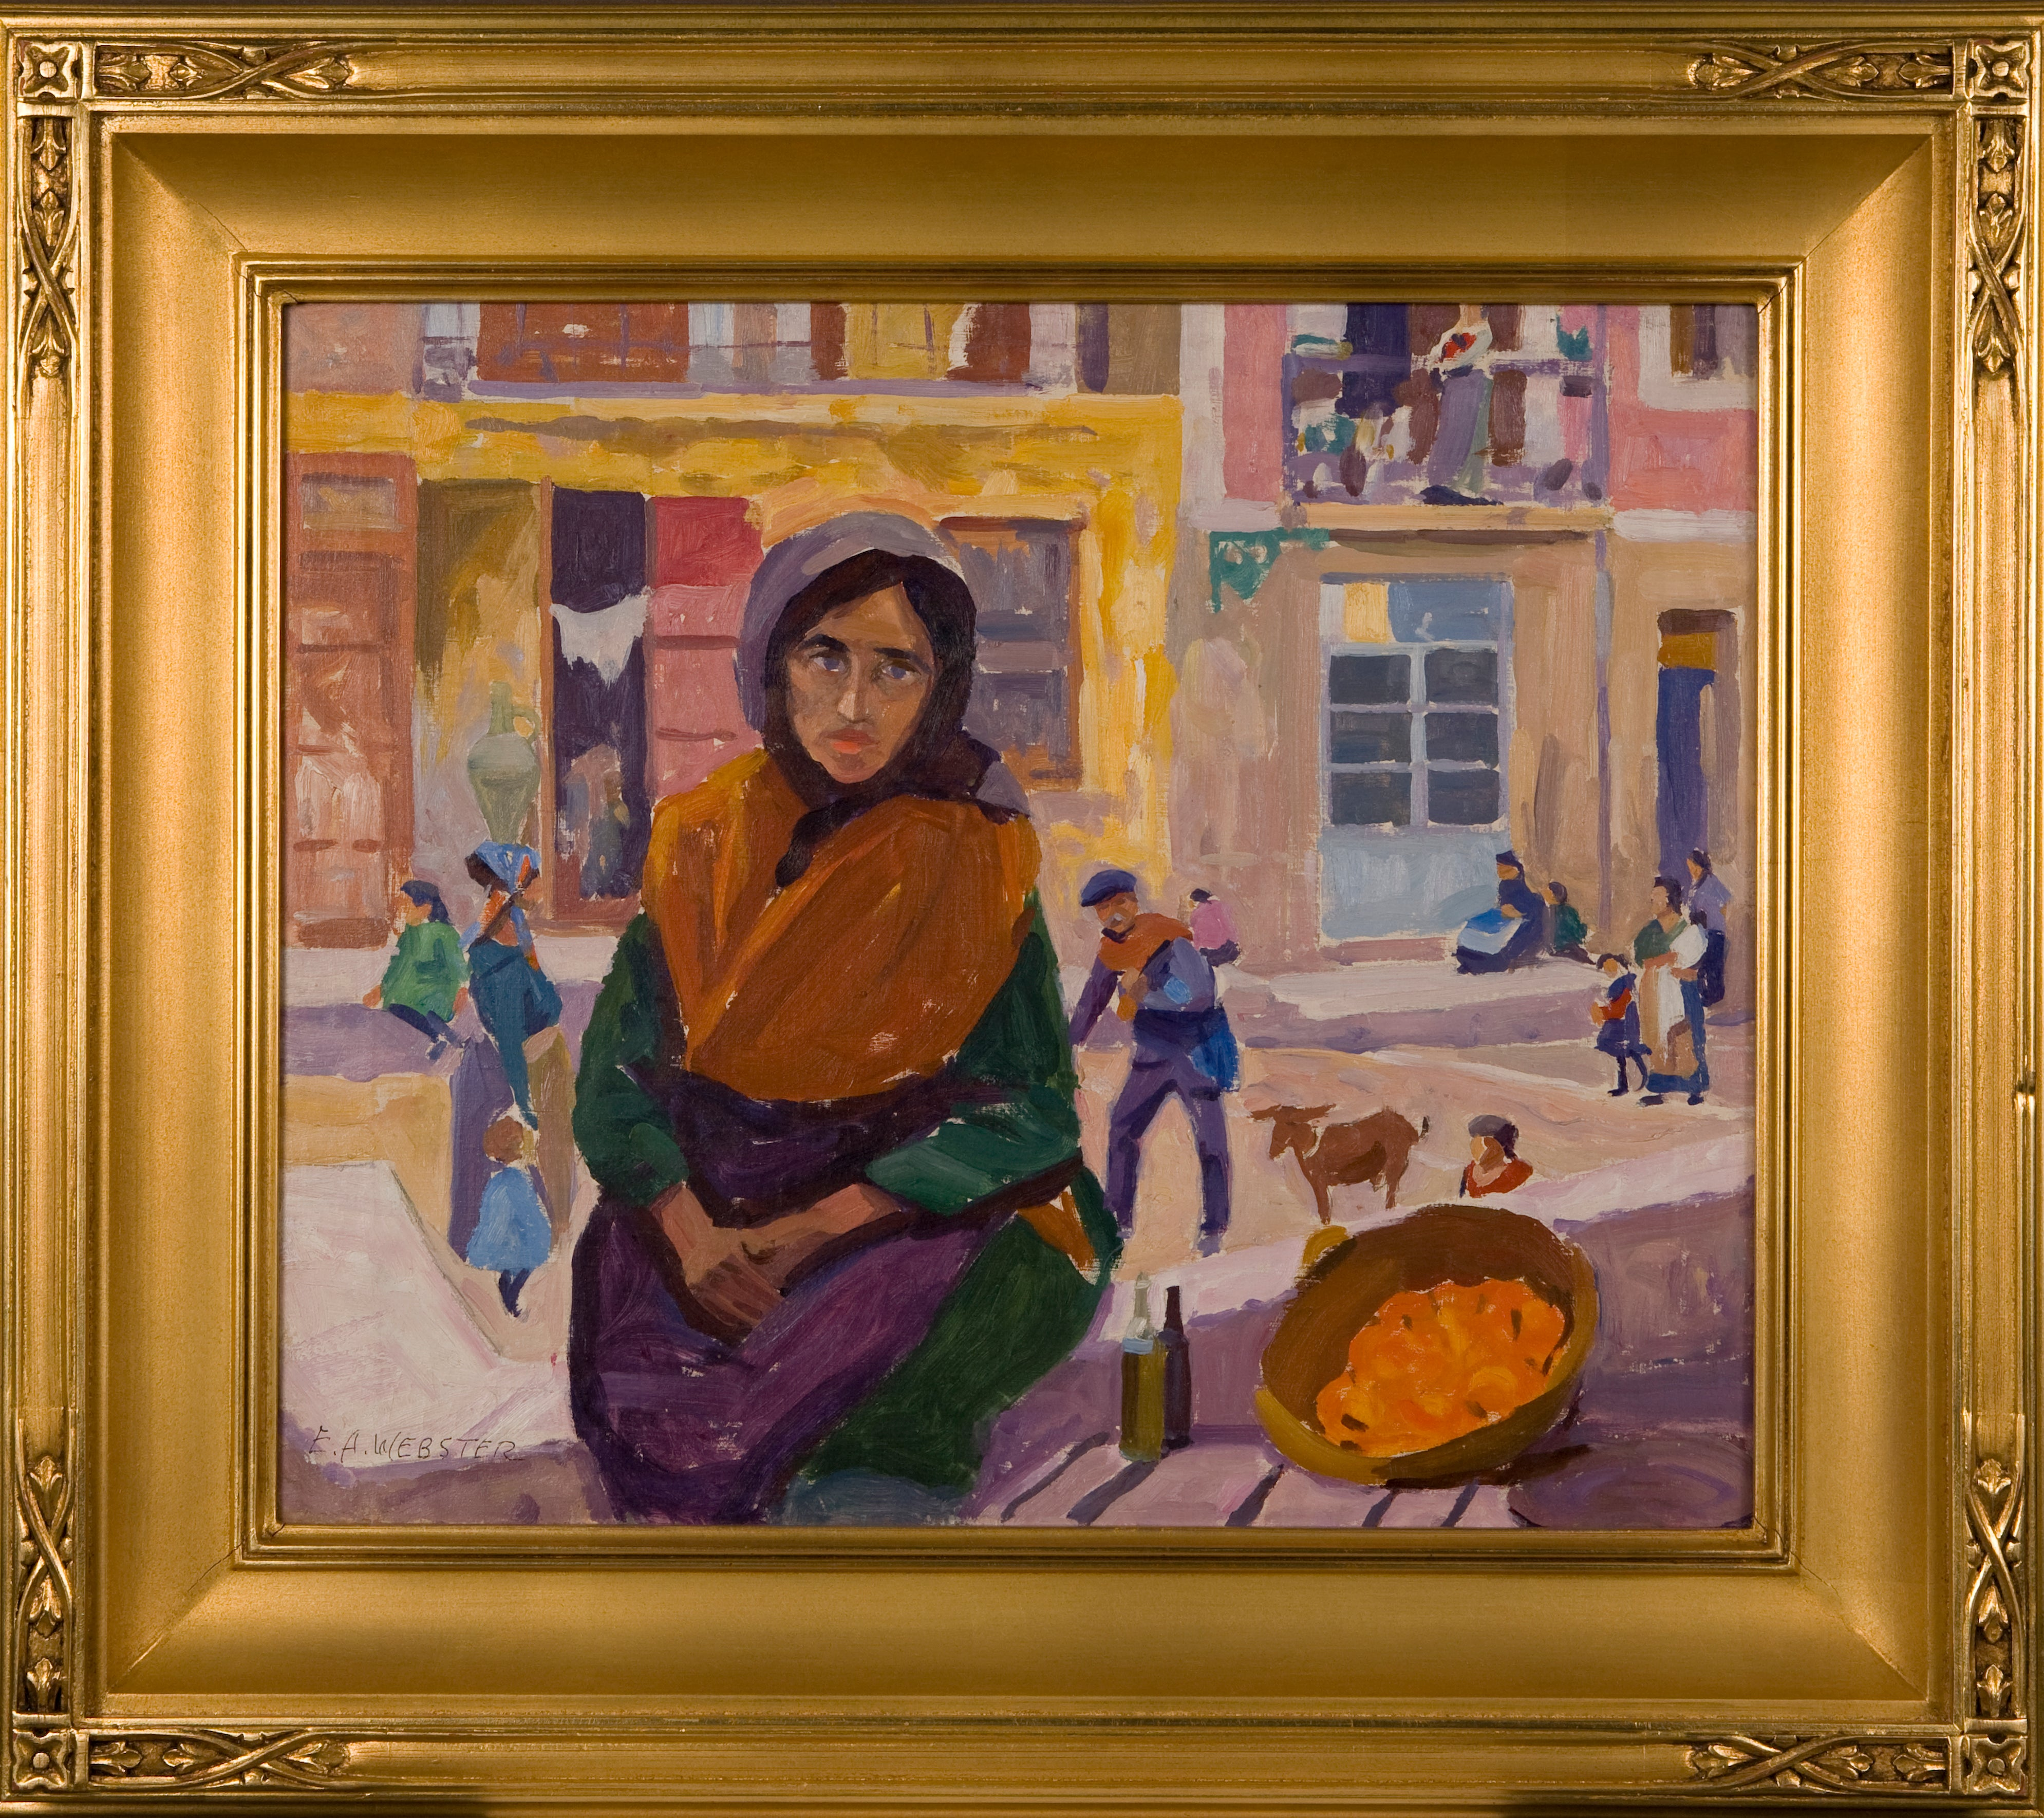 American Modern Painting by E. Ambrose Webster, Spain, 1921